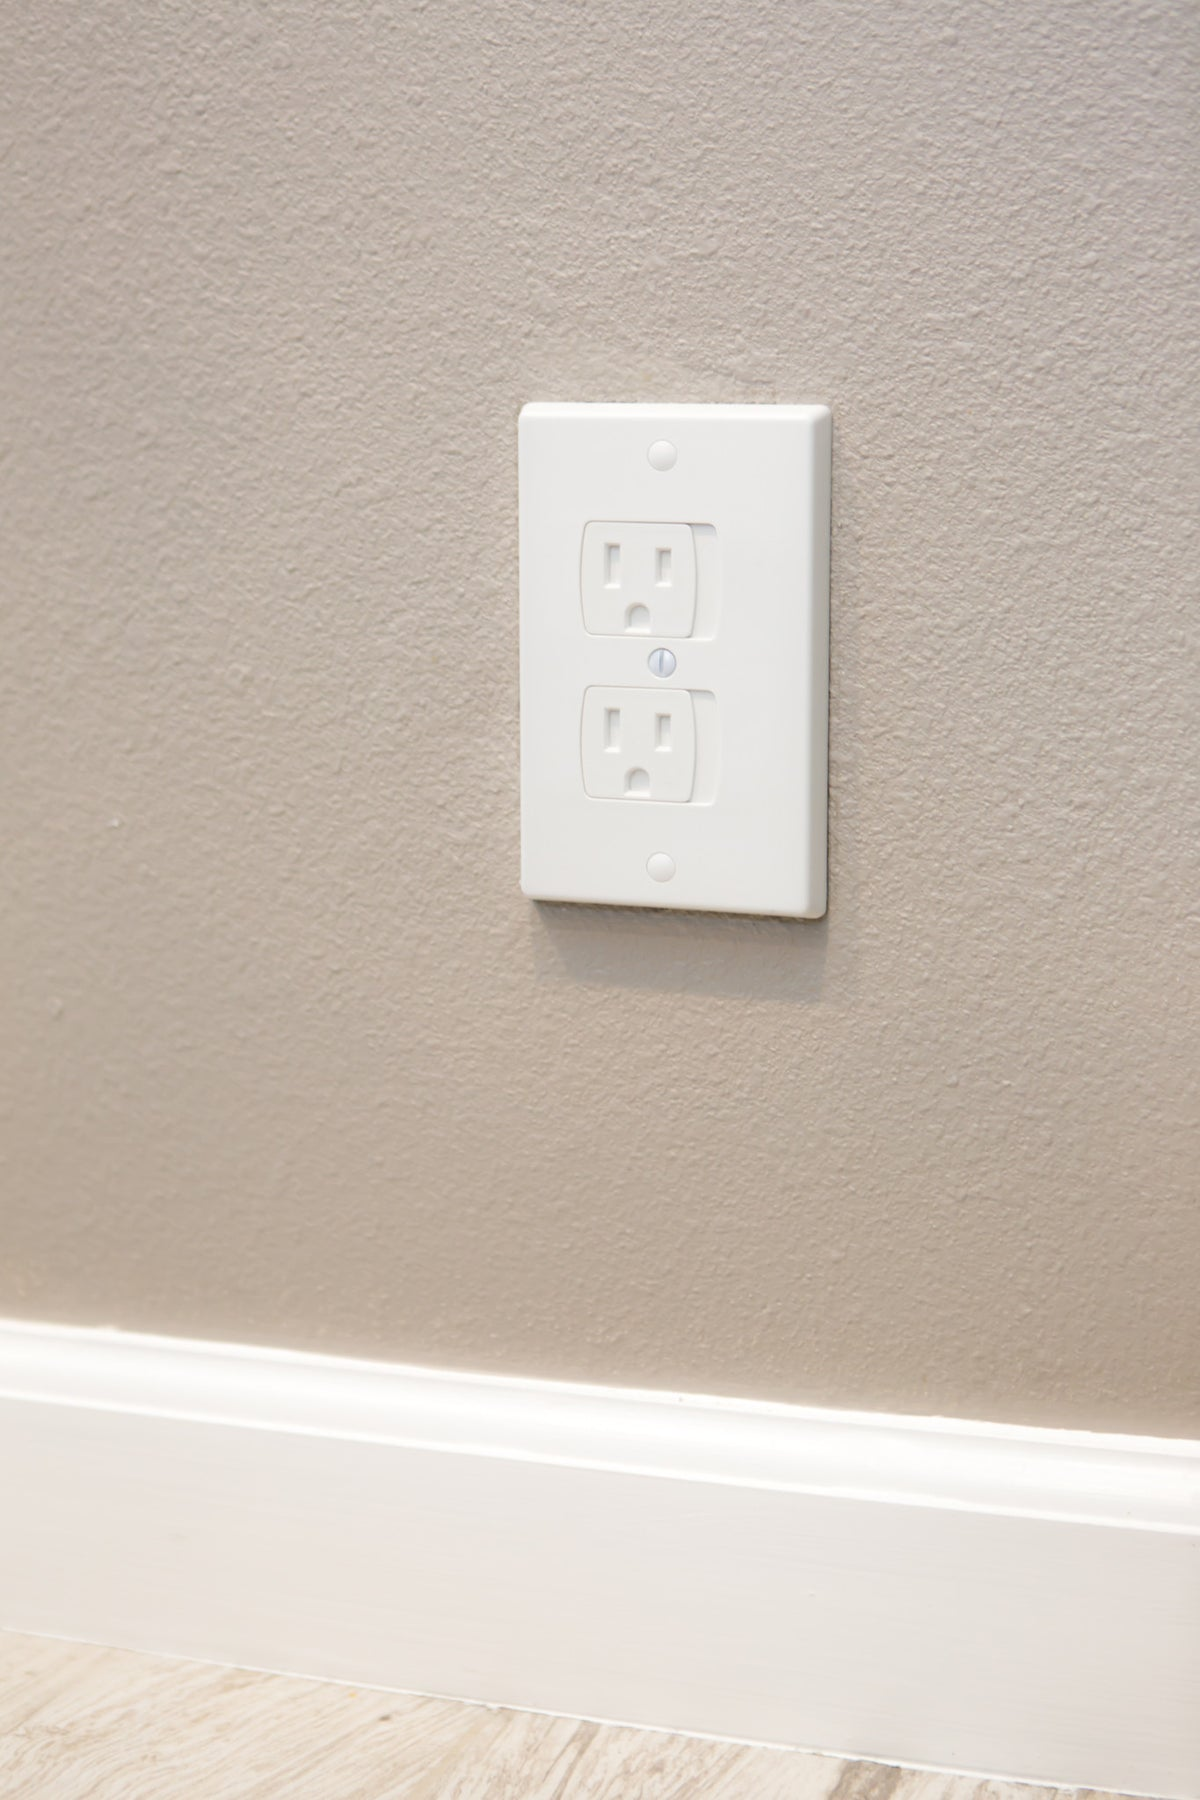 White Electrical Outlet Covers Fair Selfclosing Electrical Outlet Covers  4 Pack White  Jessa Leona Design Inspiration